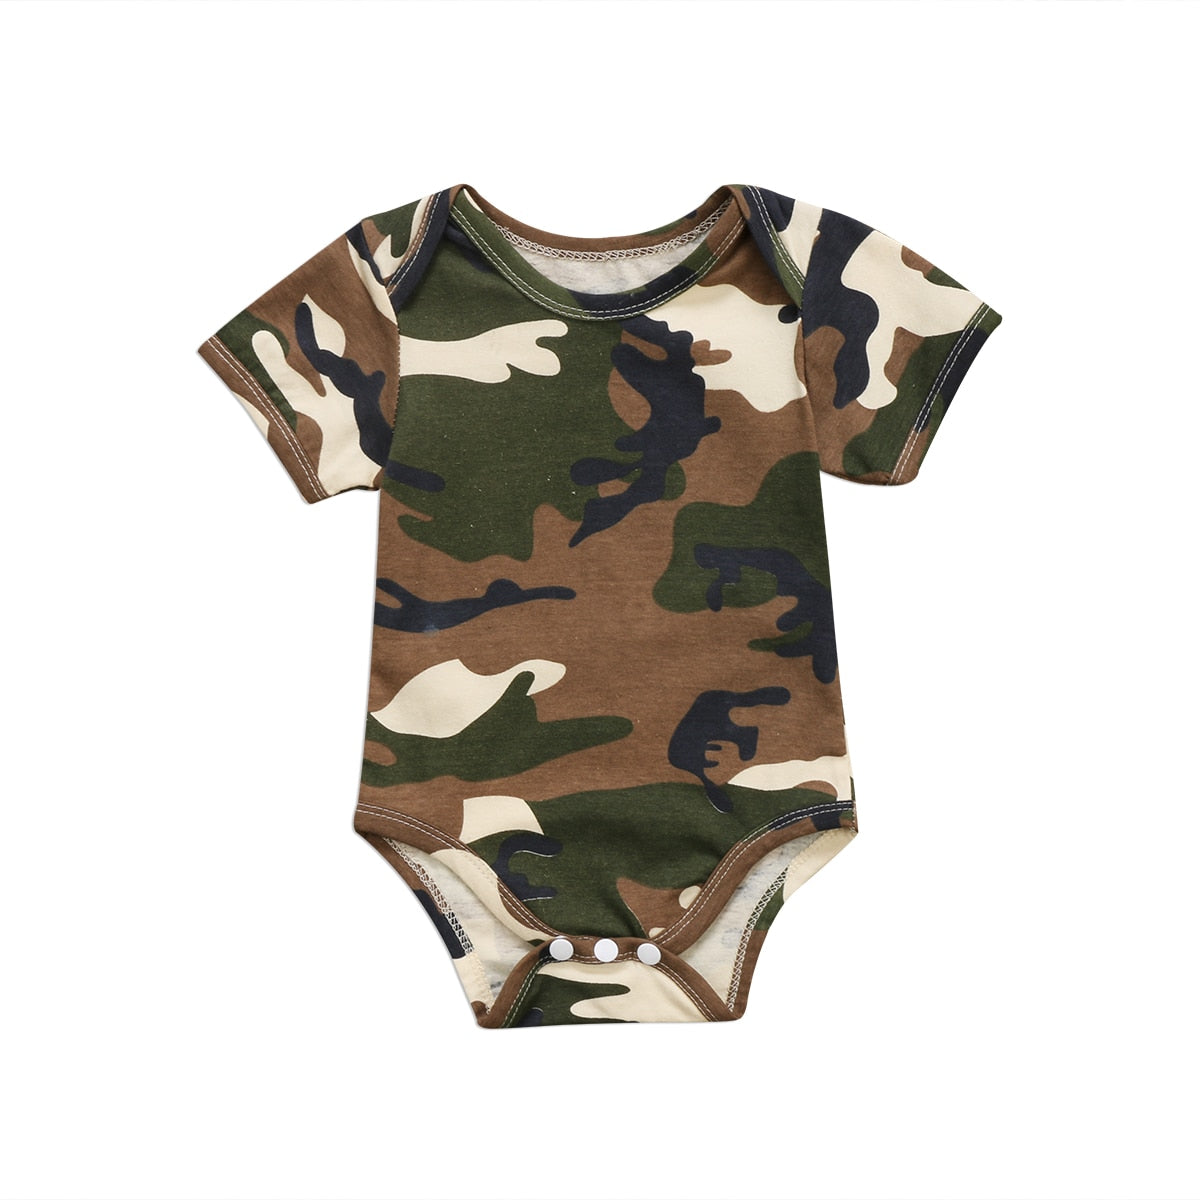 Fashion Cute Newborn Baby Boys Girls Camo Short Sleeve Romper Jumpsuit Clothes One-piece-eosegal